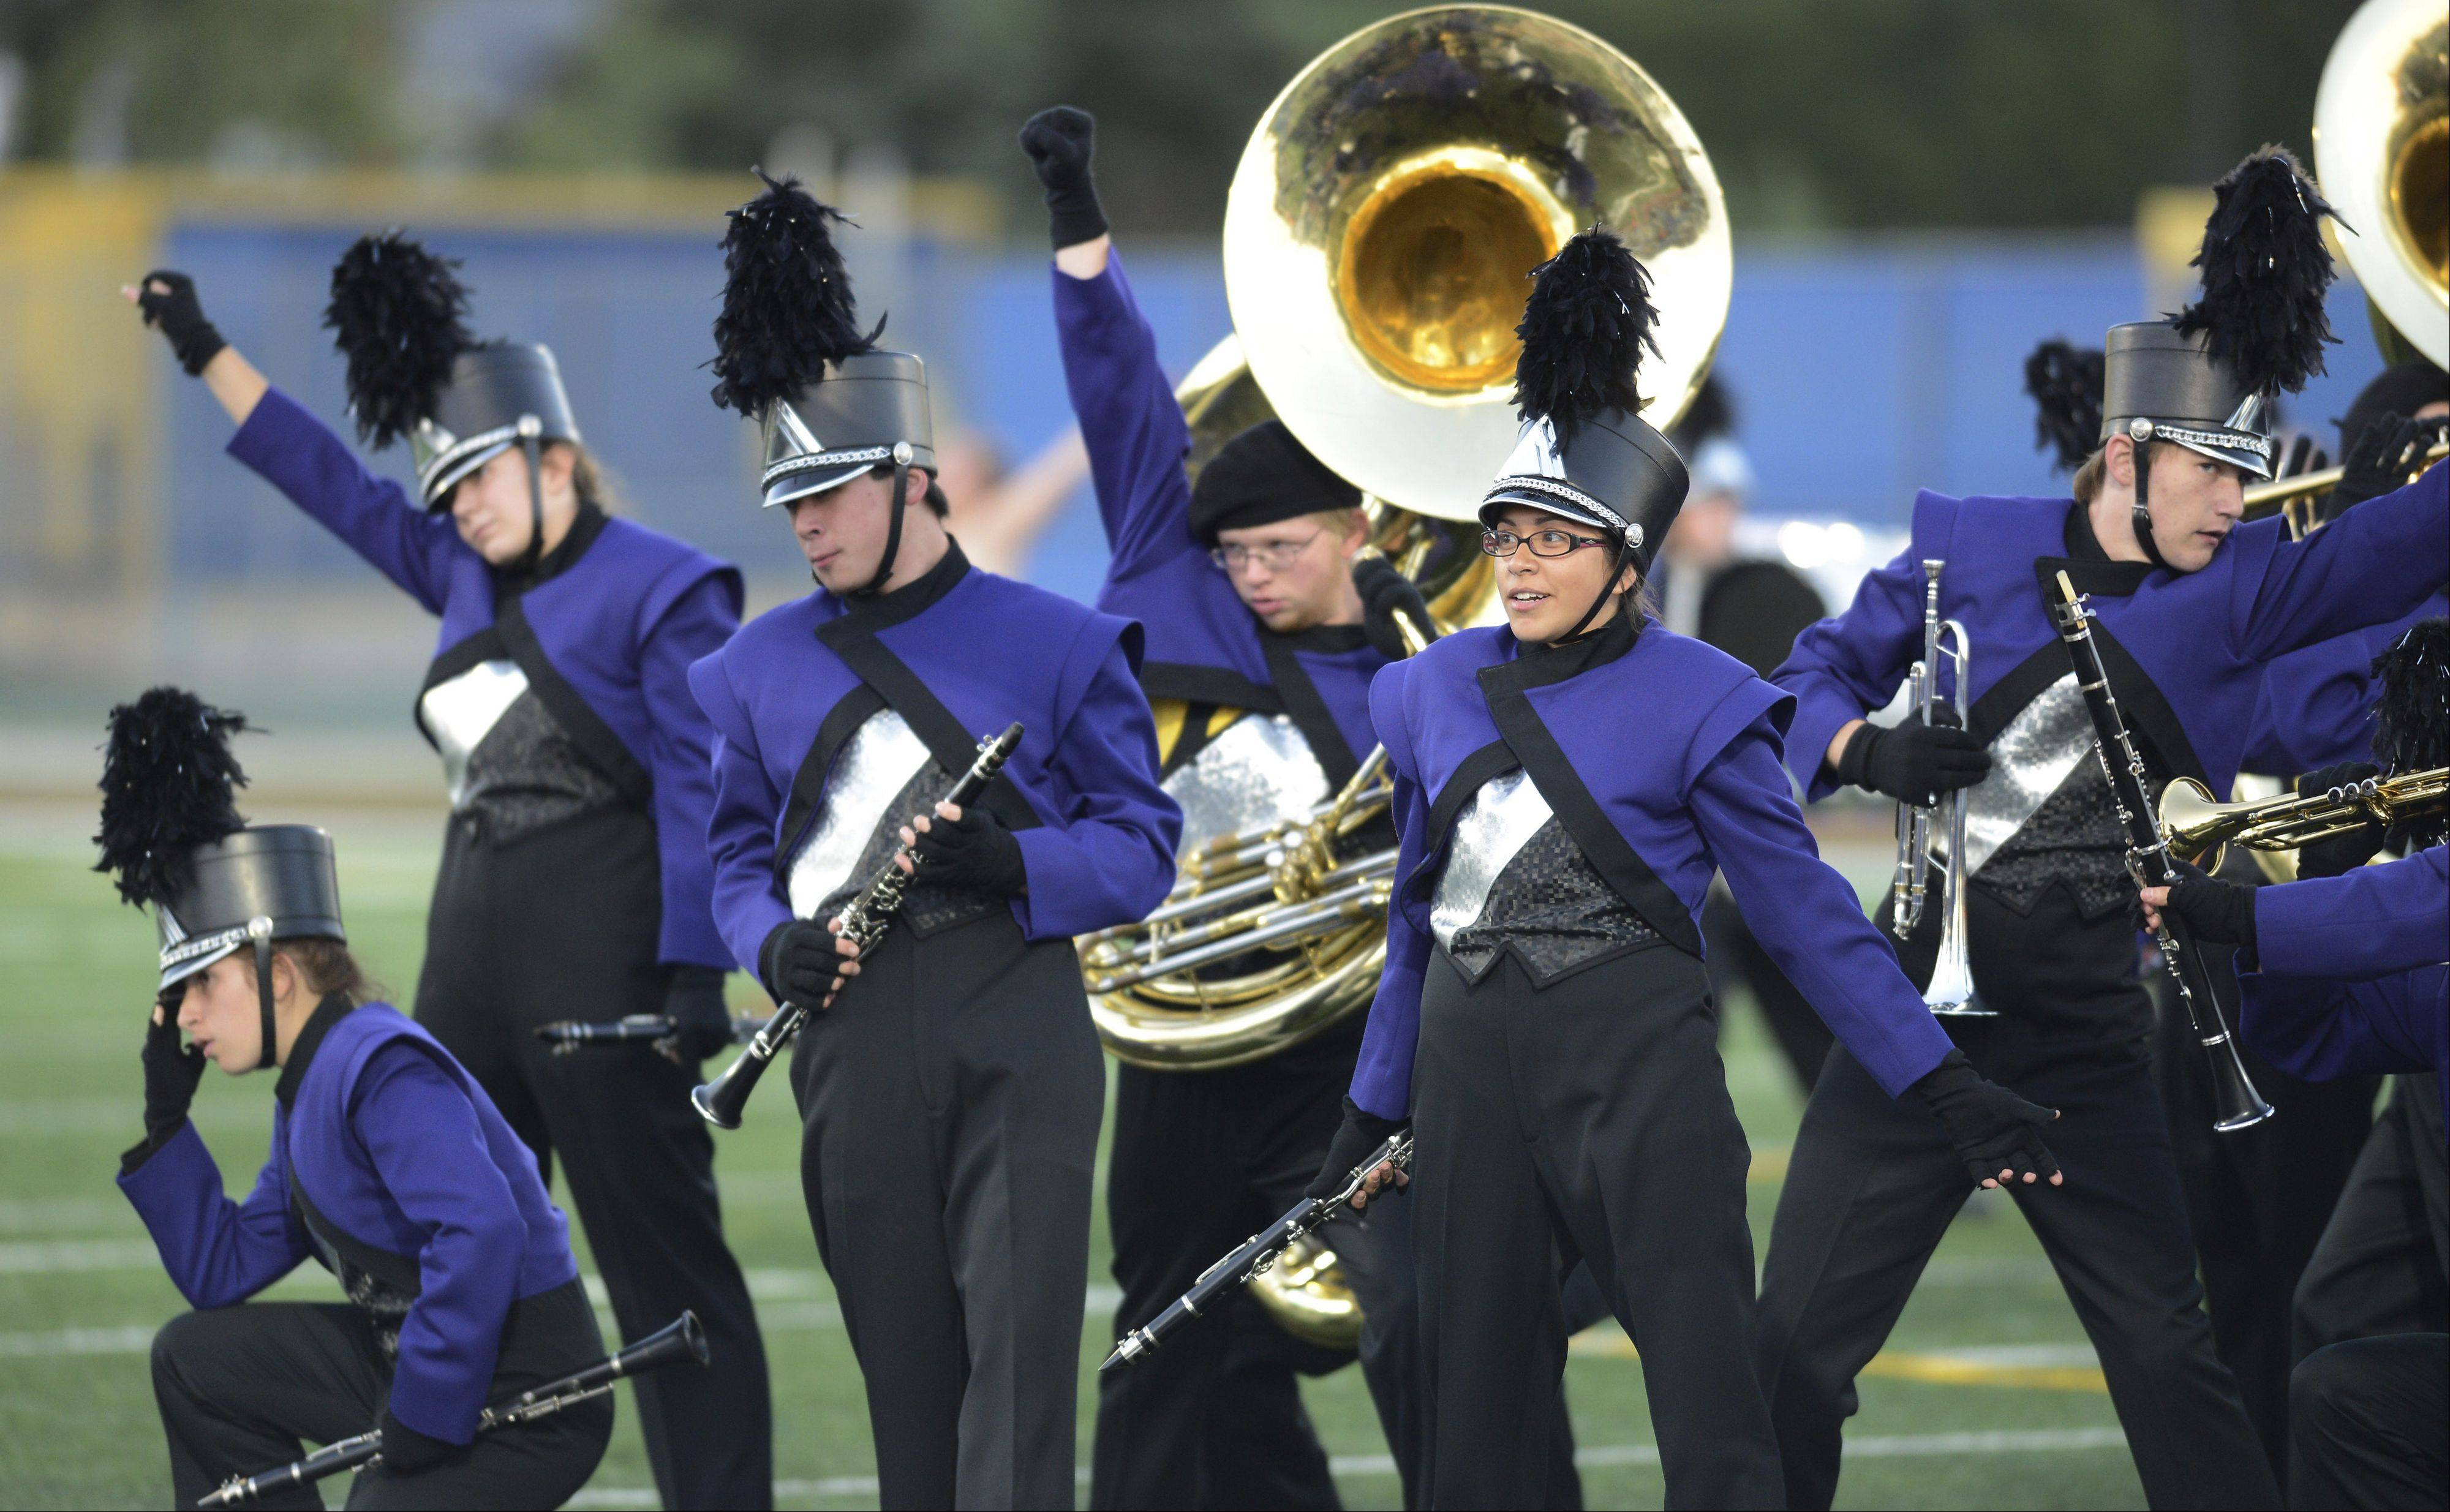 The Rolling Meadows Marching Mustangs complete their performance during the annual Chicagoland Marching Band Festival at Wheeling High School Saturday.